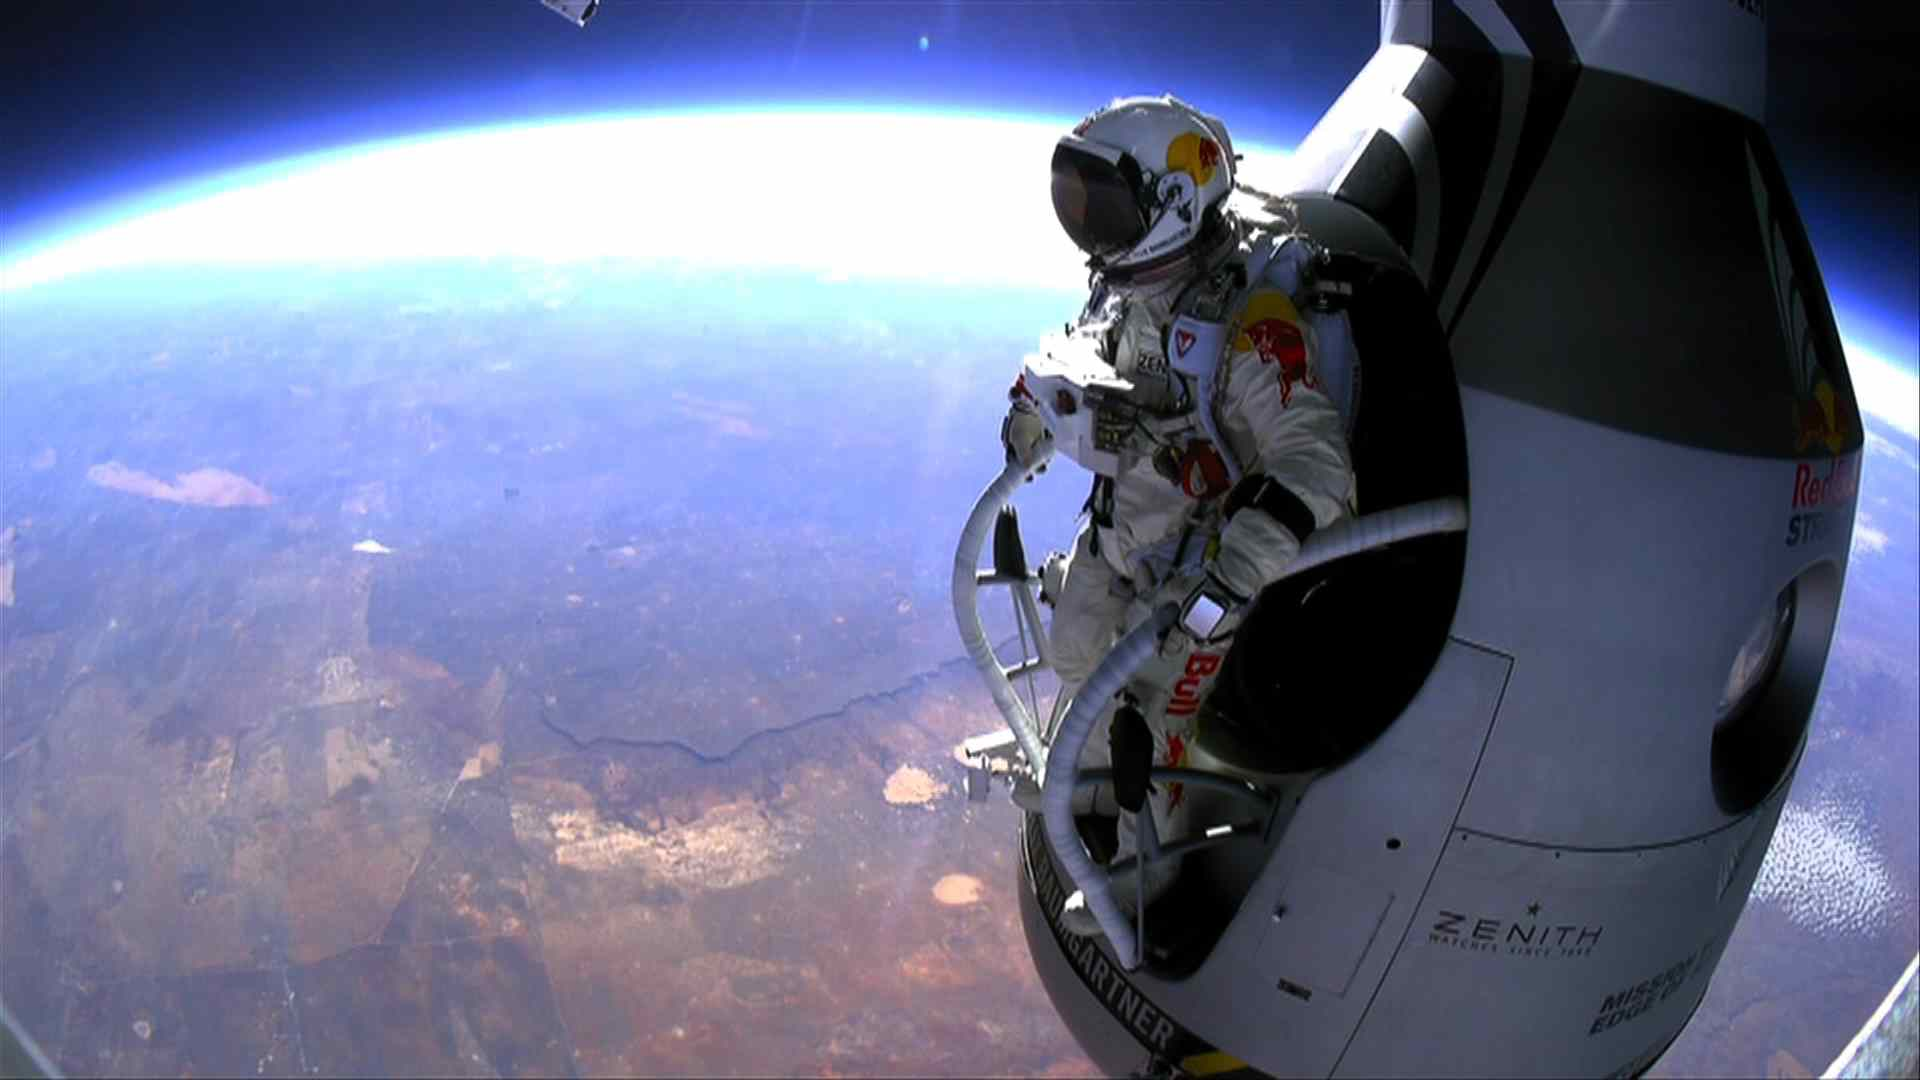 felix baumgartner breaks the sound barrier with his world record space jump.